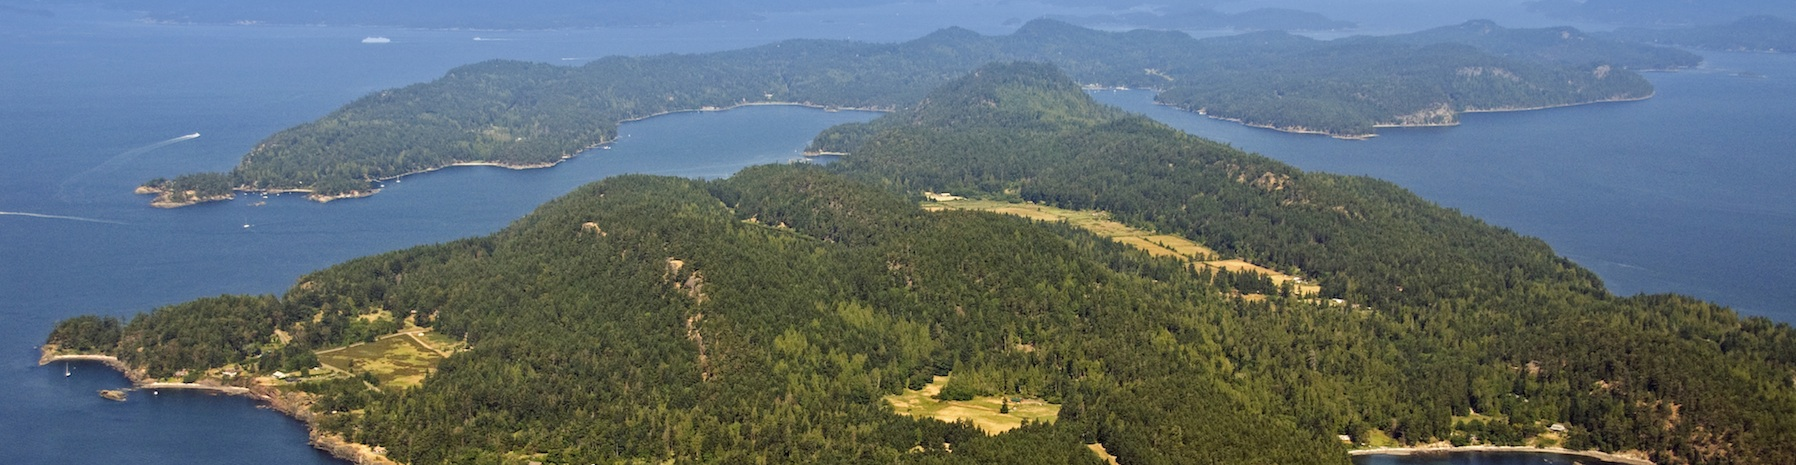 beach on Pender Island by Eha Onno for the Pender Island Chamber of Commerce